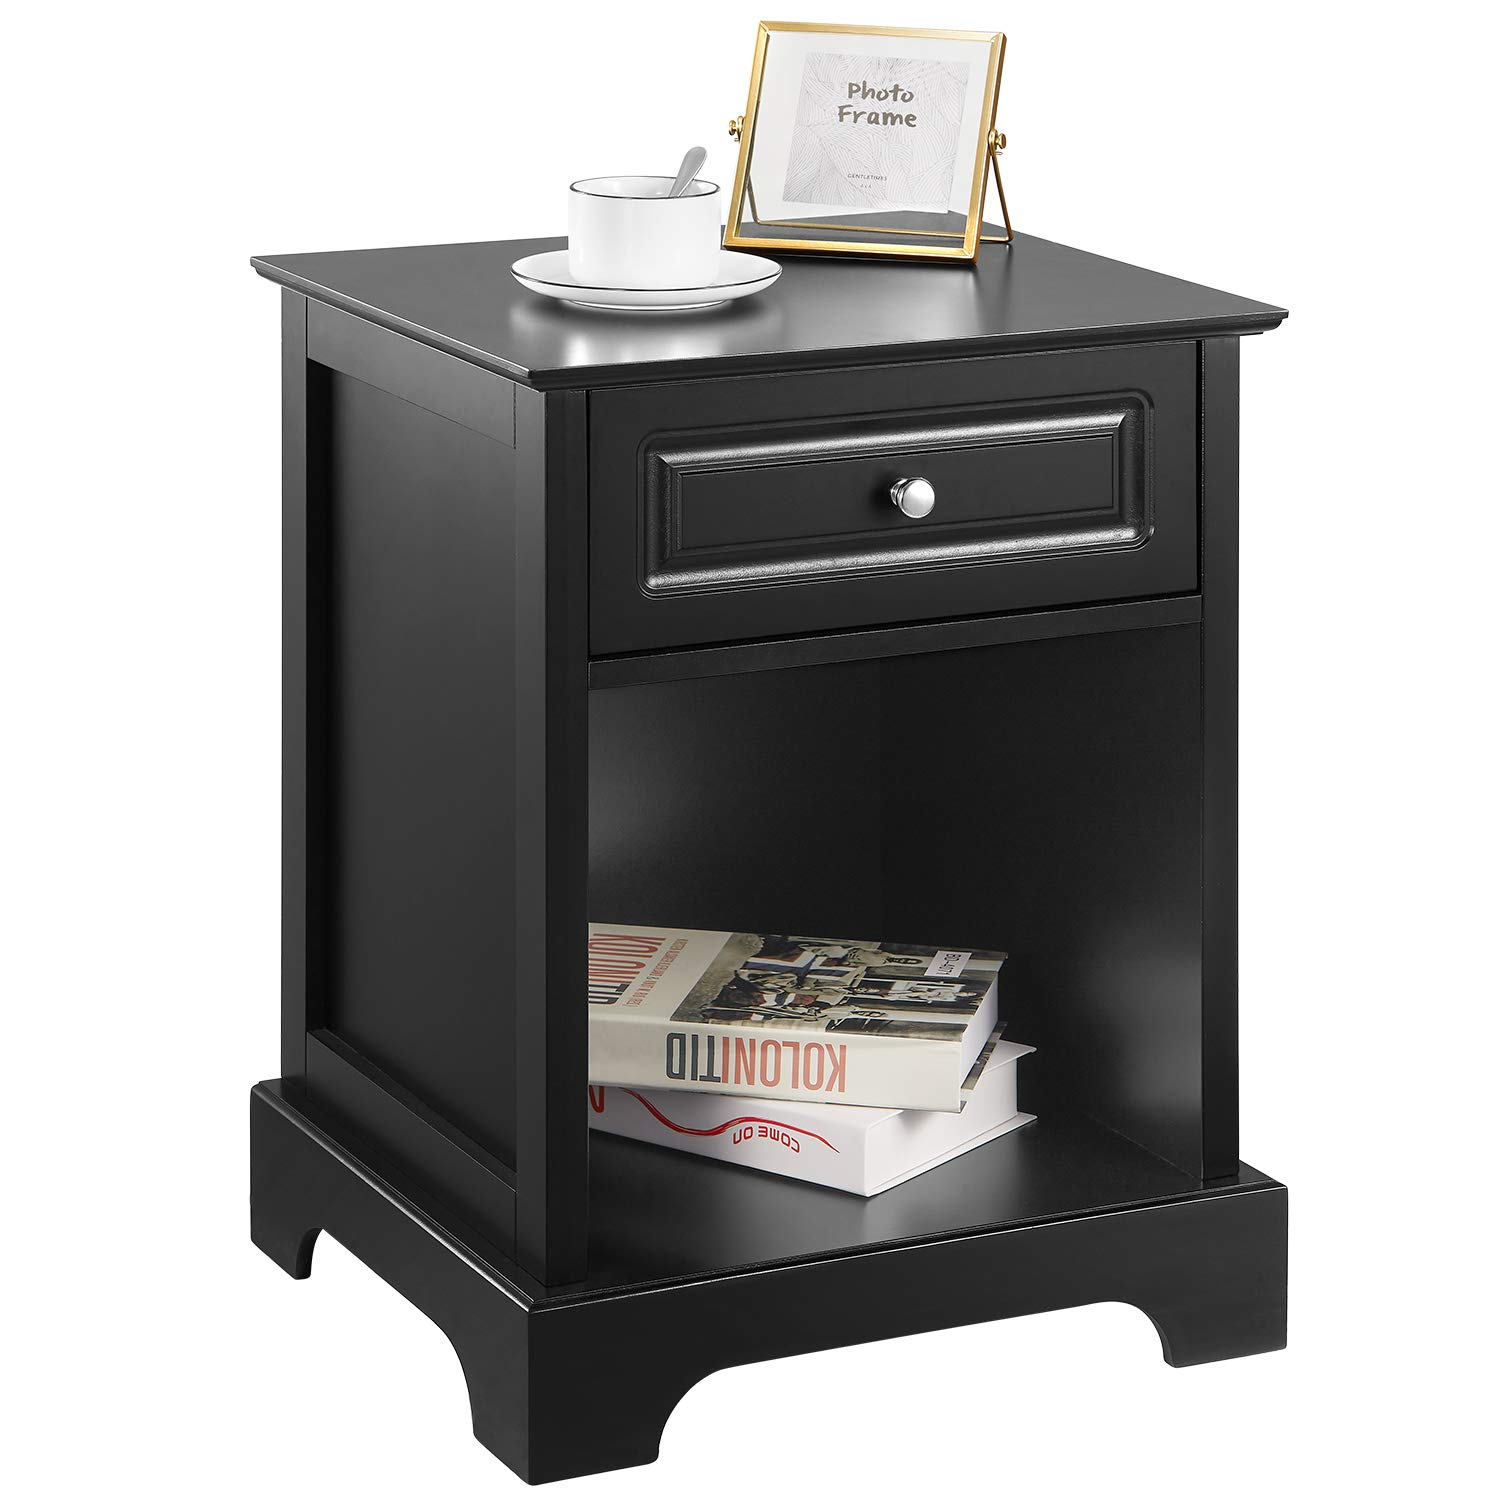 Black Nightstand for Bedroom Kealive 2 in 1 End Table with Drawer and Open Storage Shelf, Night Stand Furniture Home Style, Easy Assembly 18.1L x 15.8W x 24H by kealive